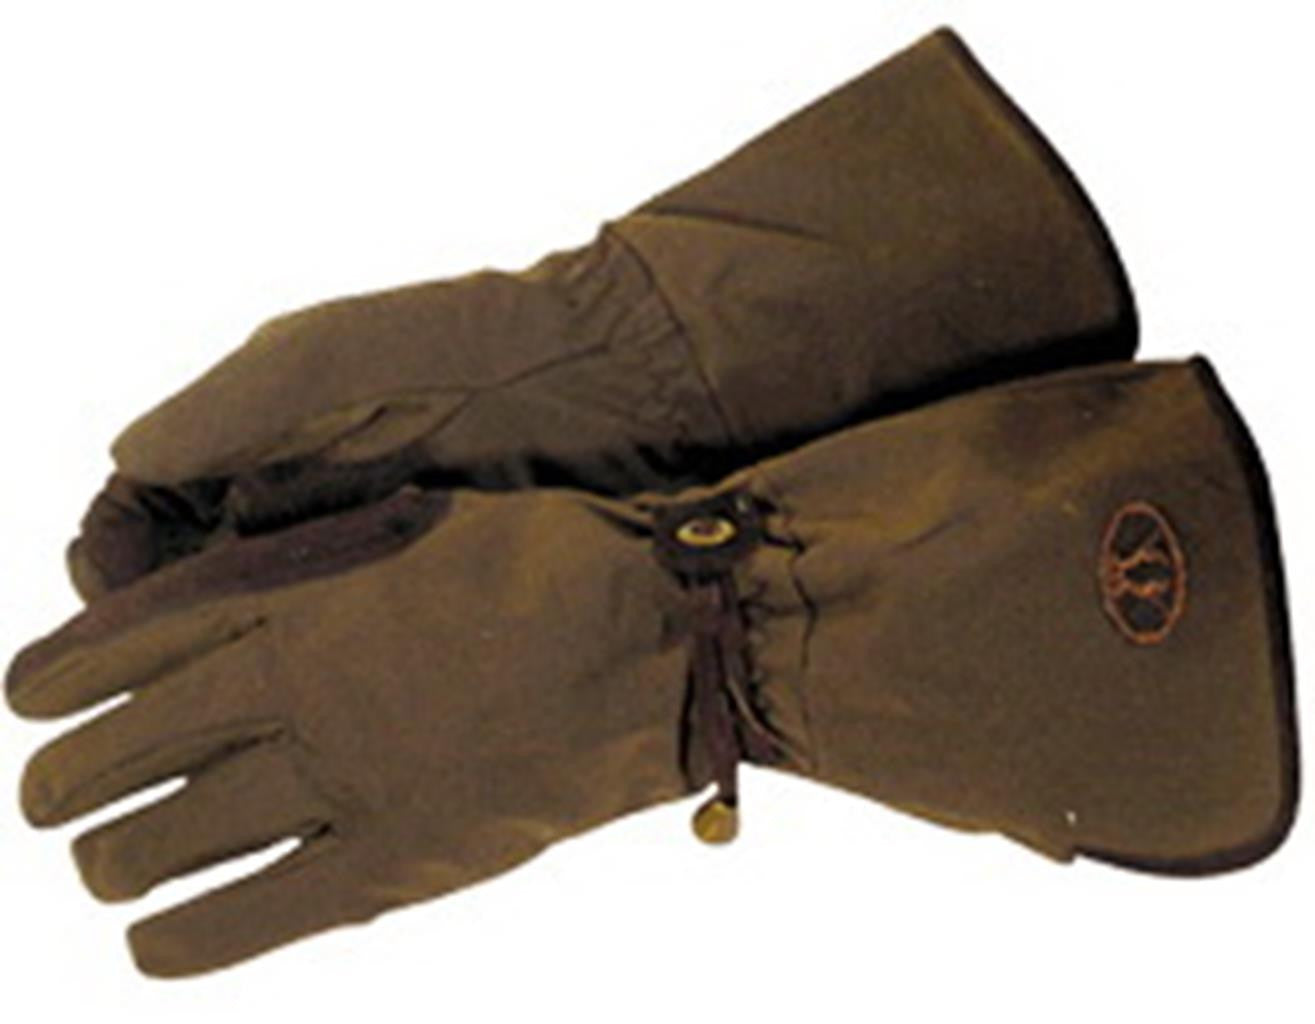 Gloves with extended shaft Long Gauntlet | Size XL and XXL - OUT OF AUSTRALIA | Kakadu Traders Australia